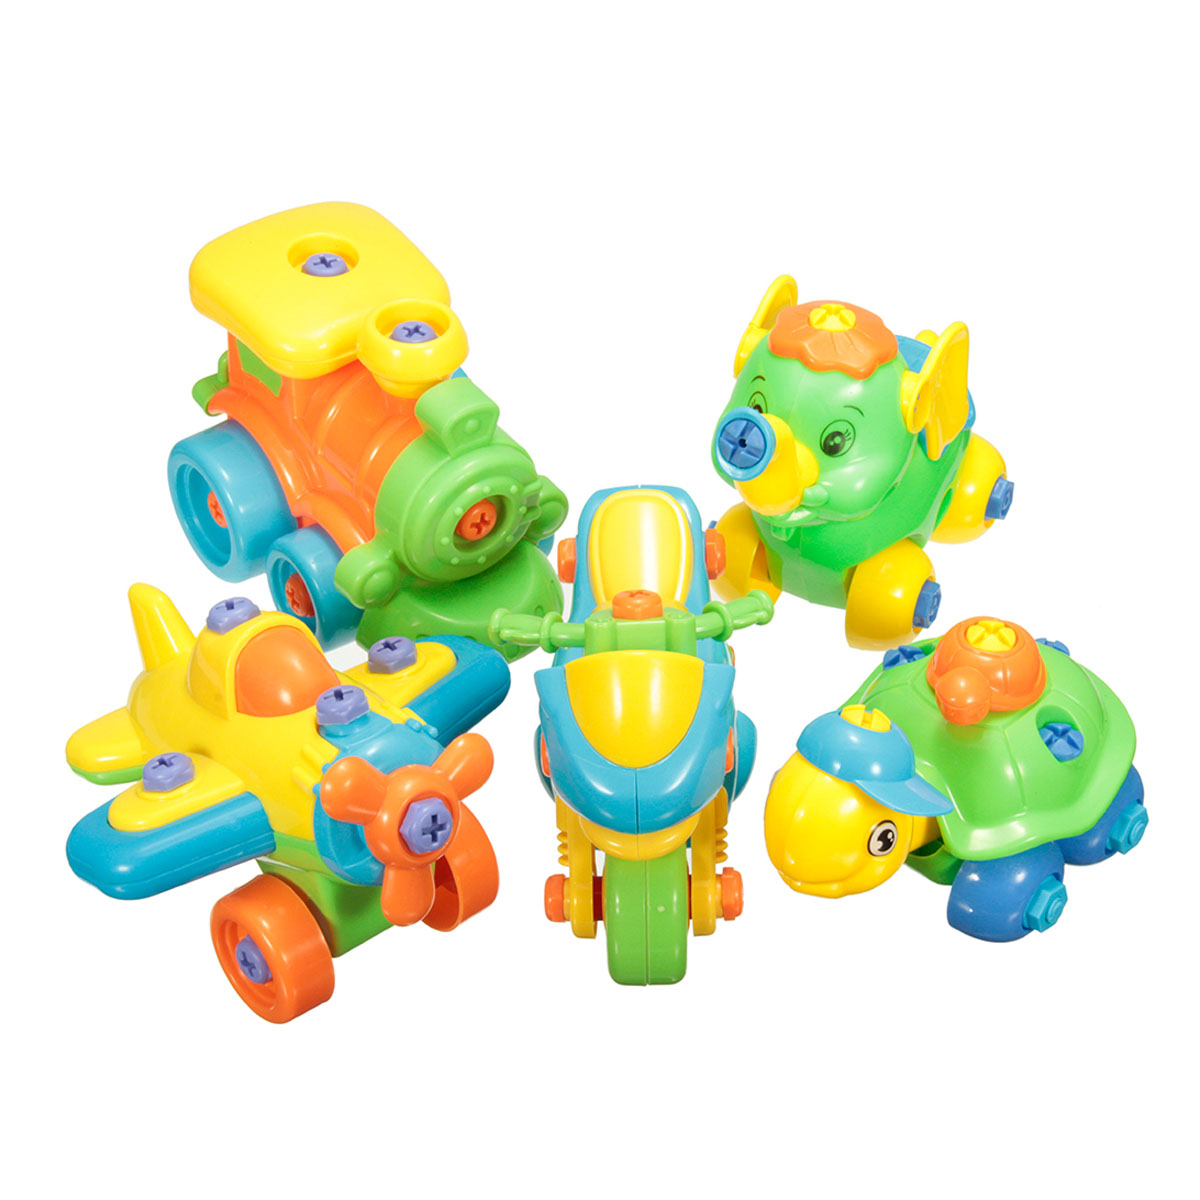 Toys For Fun : Aliexpress buy jigsaw building assembled toys